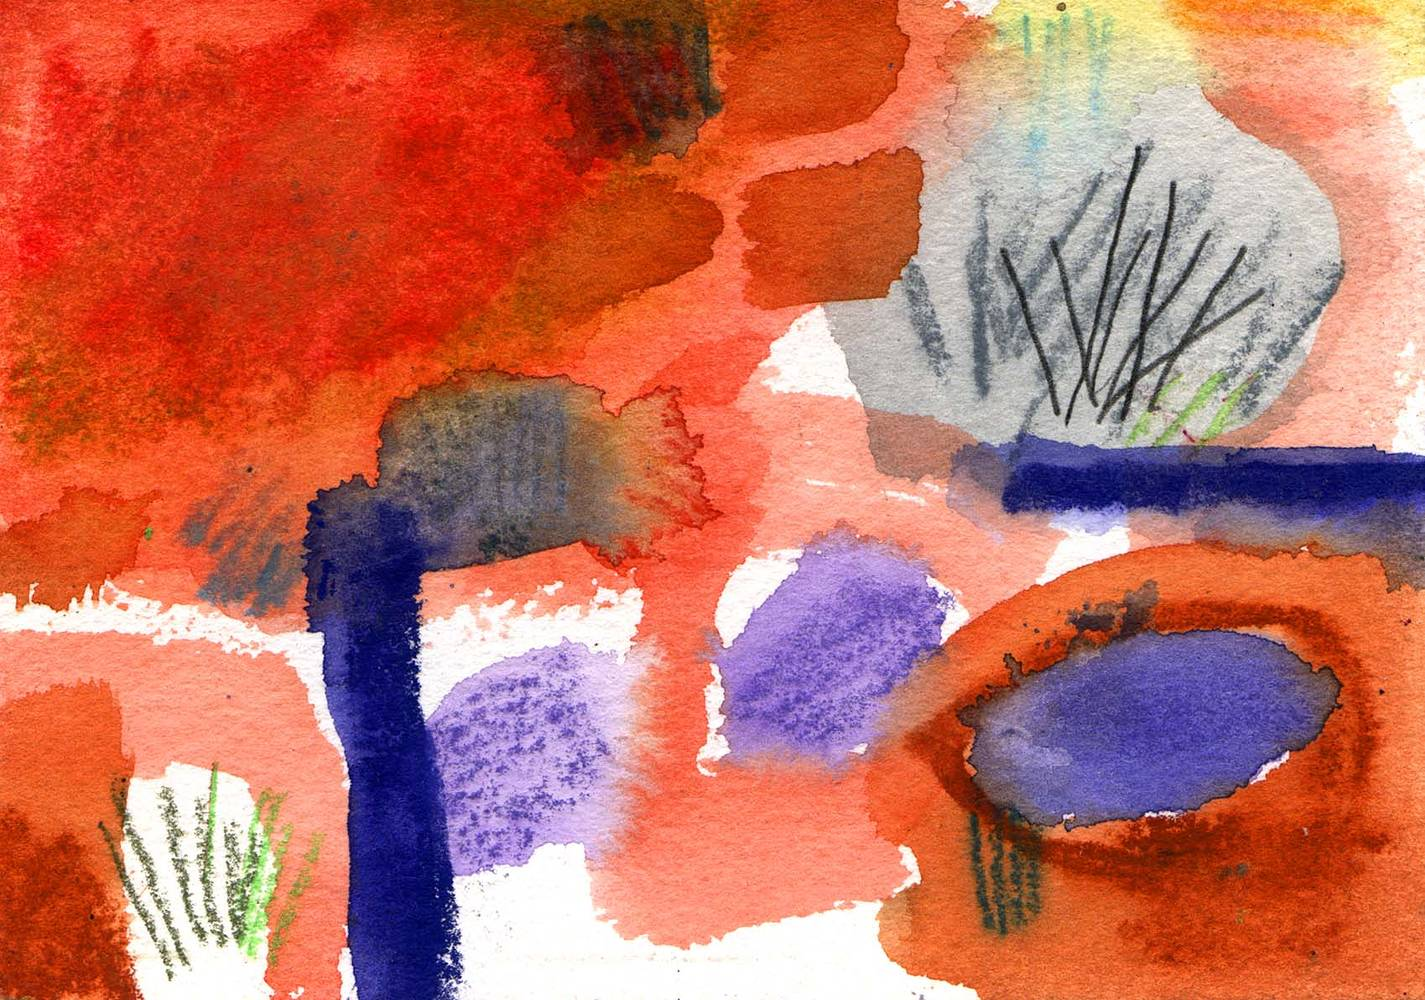 Watercolor Oz: Sacred site 1 by Sarah James